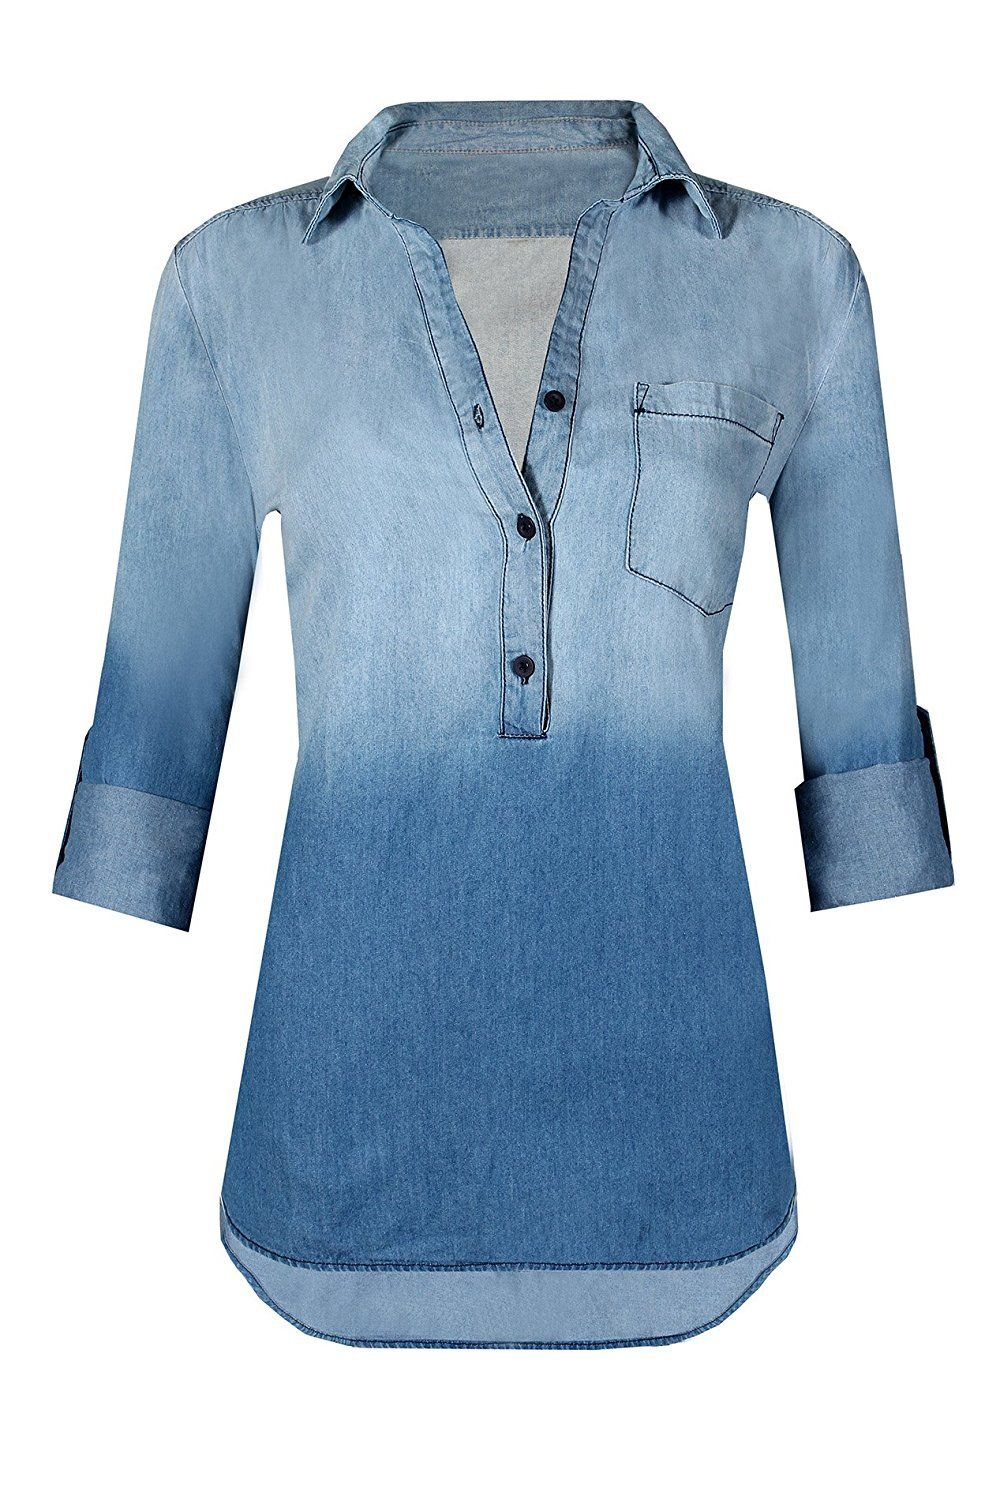 a836e5def HOT FROM HOLLYWOOD Women's Button Down Roll Up Sleeve Classic Denim Shirt  Tops